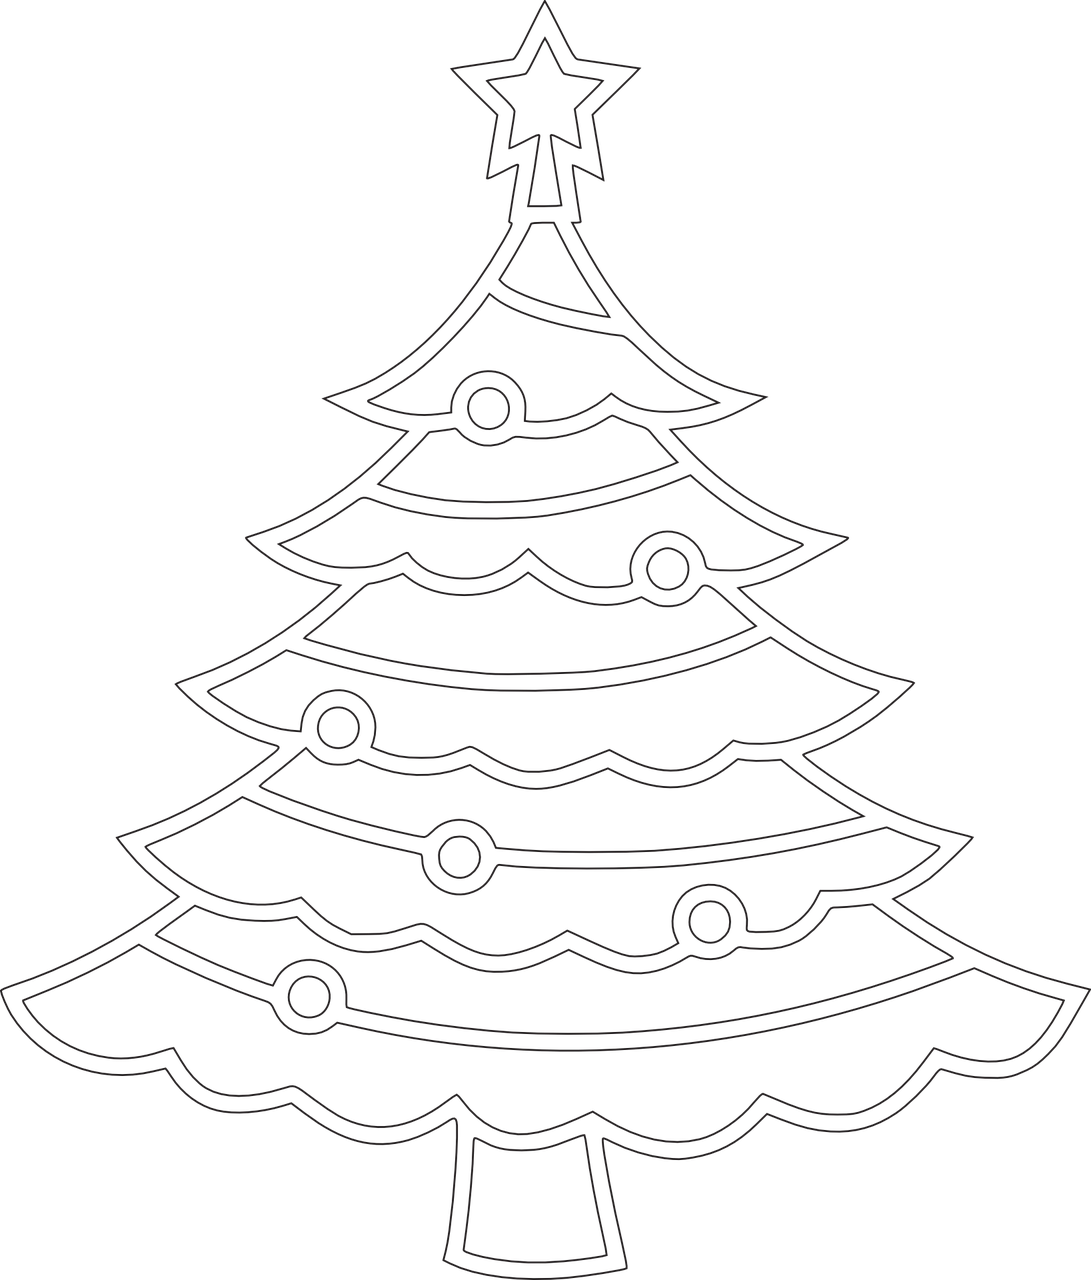 Free Printable Christmas Tree Coloring Pages For Kids 9 Pics - HOW-TO-DRAW In 1 Minute